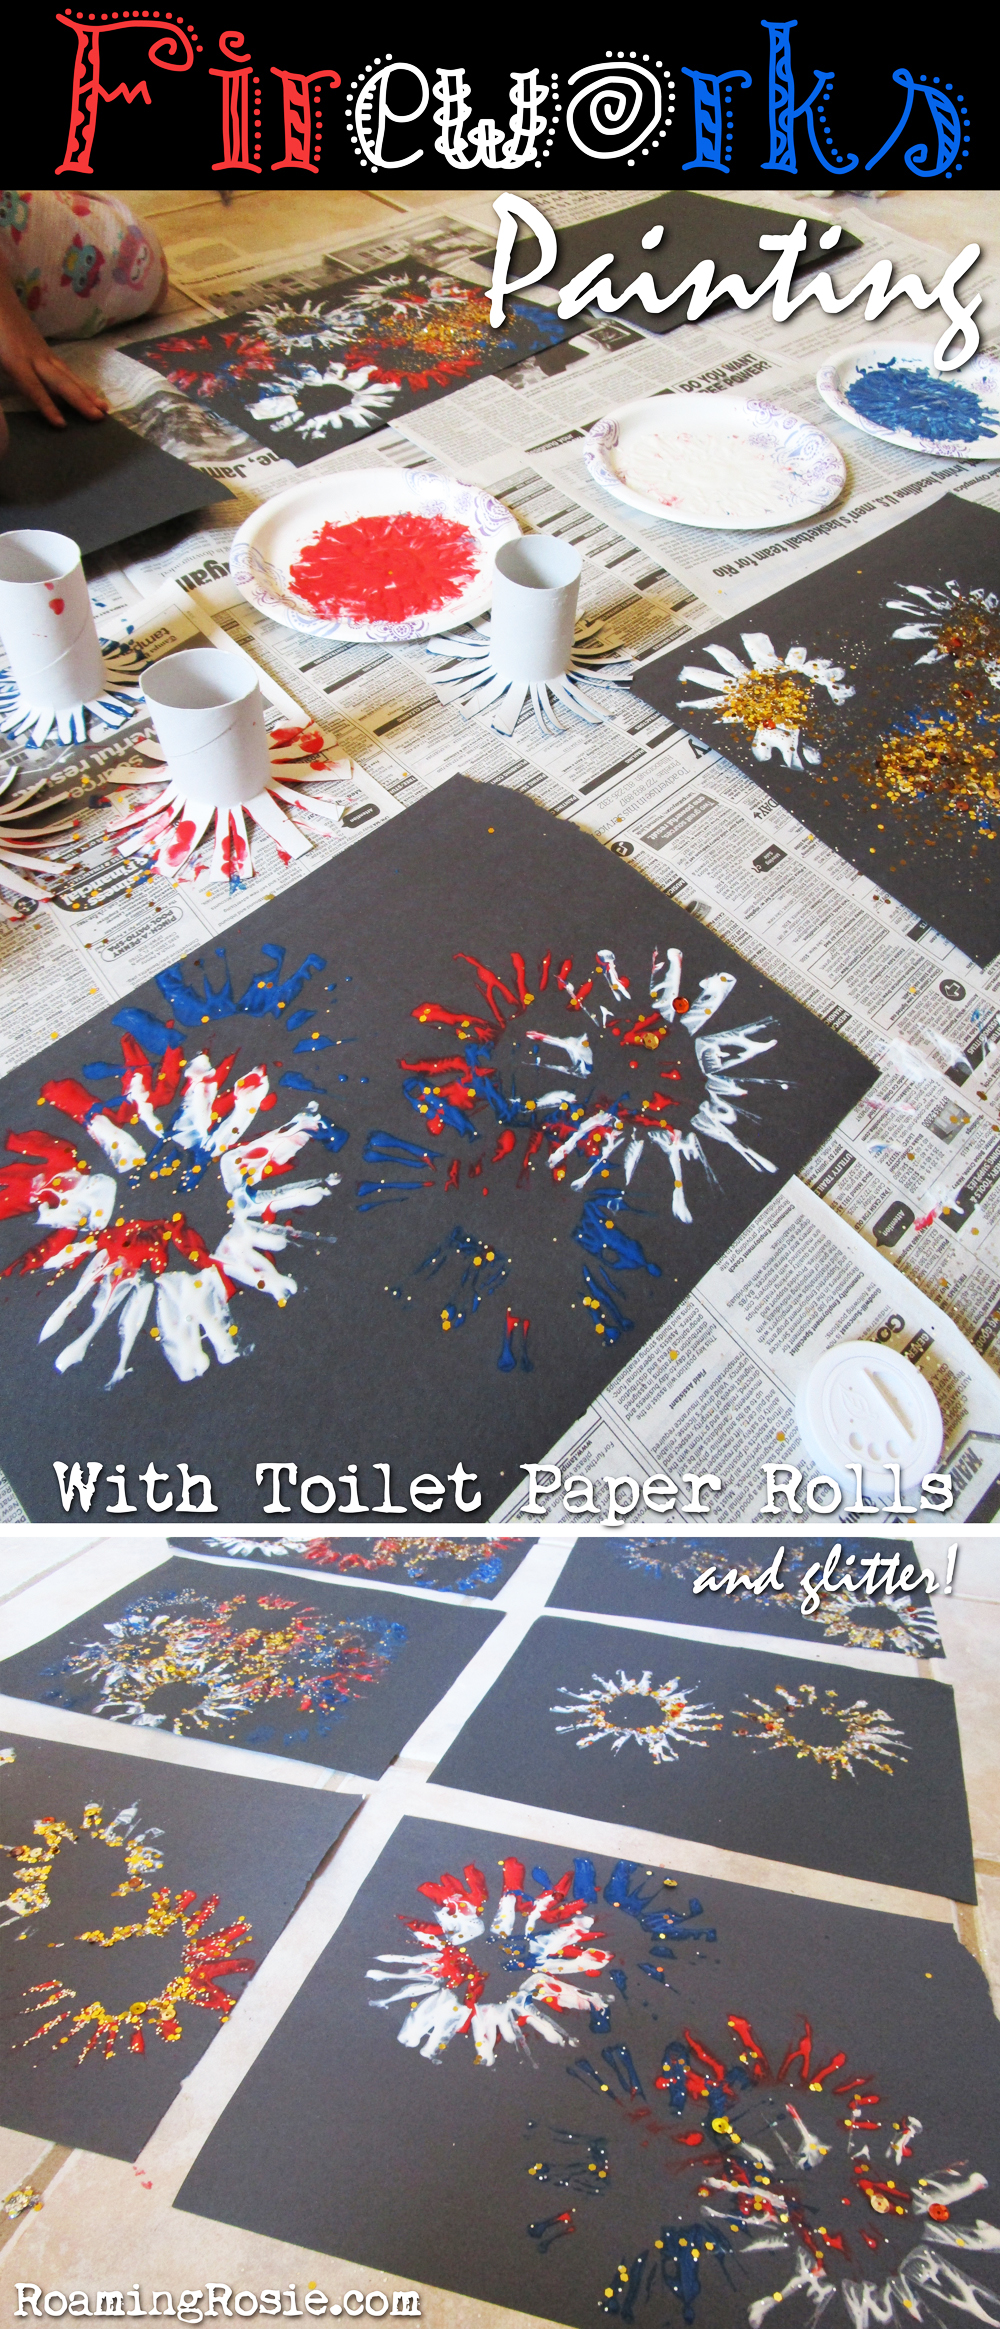 Fireworks Painting with Toilet Paper Rolls and Glitter 1